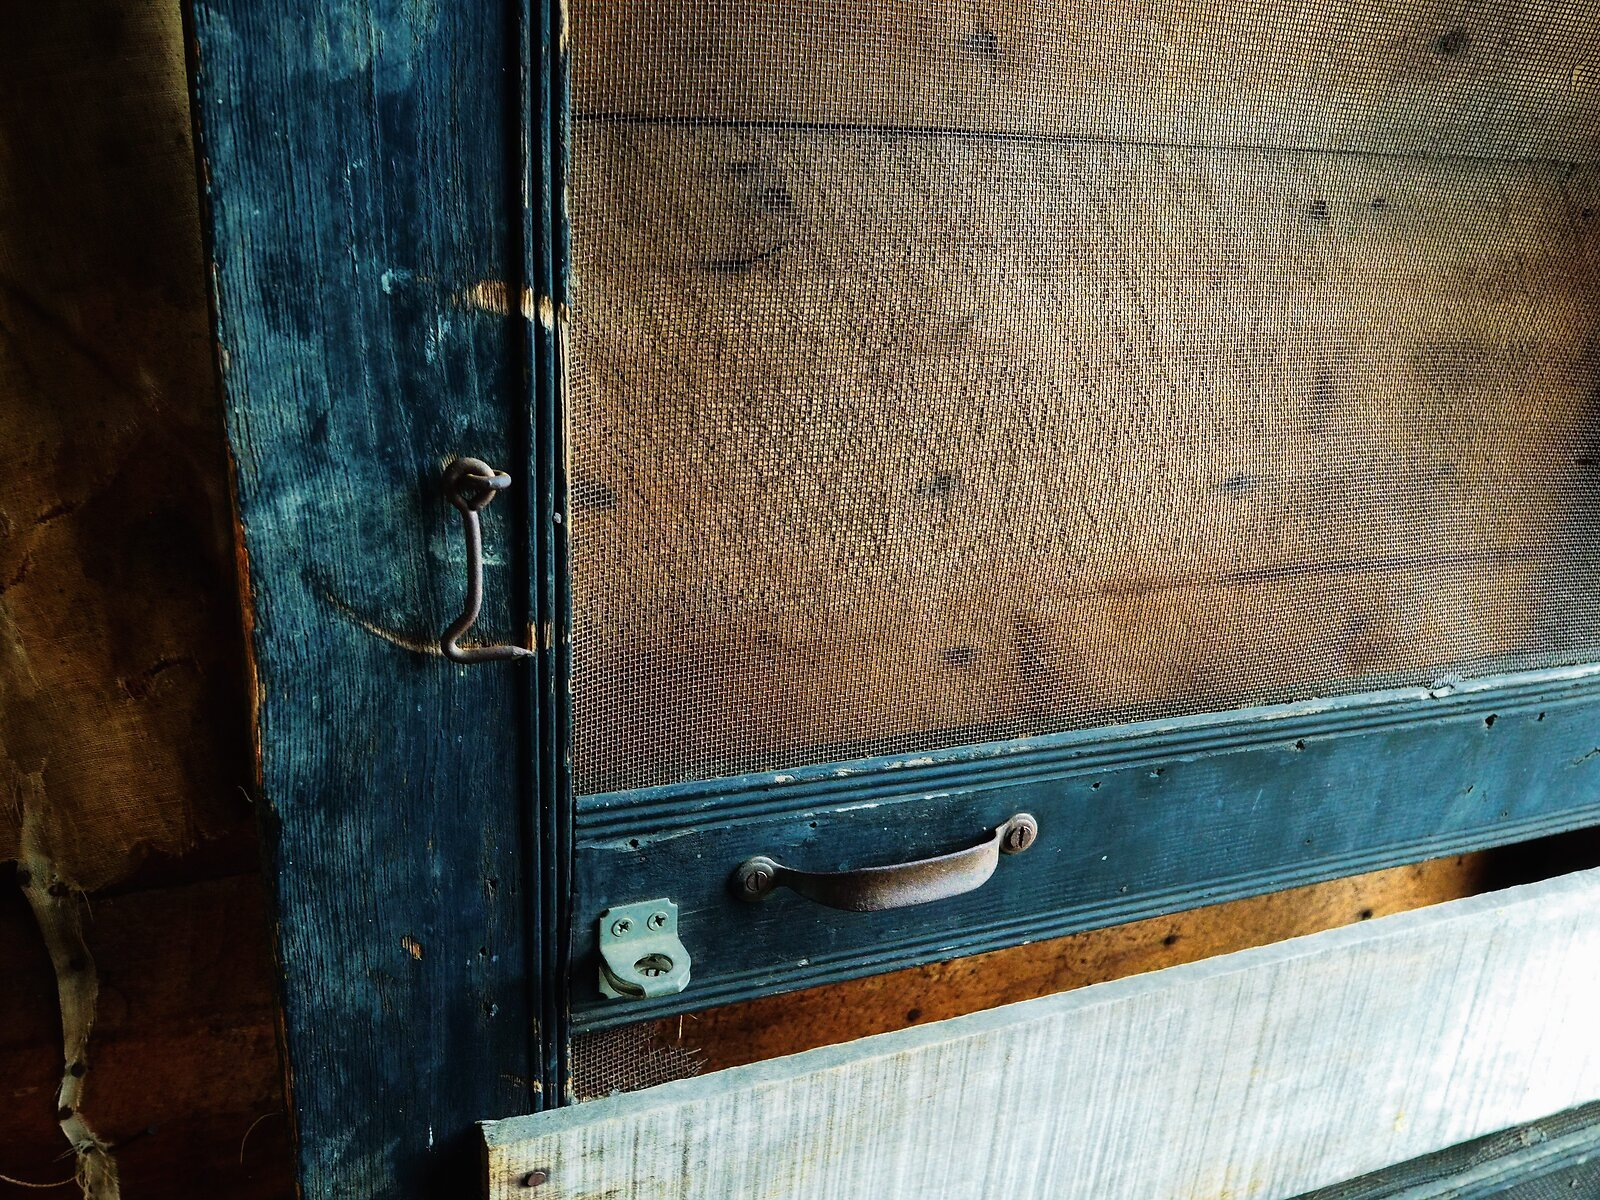 PenF_Jan12_21_Cabin_door_handle.jpg